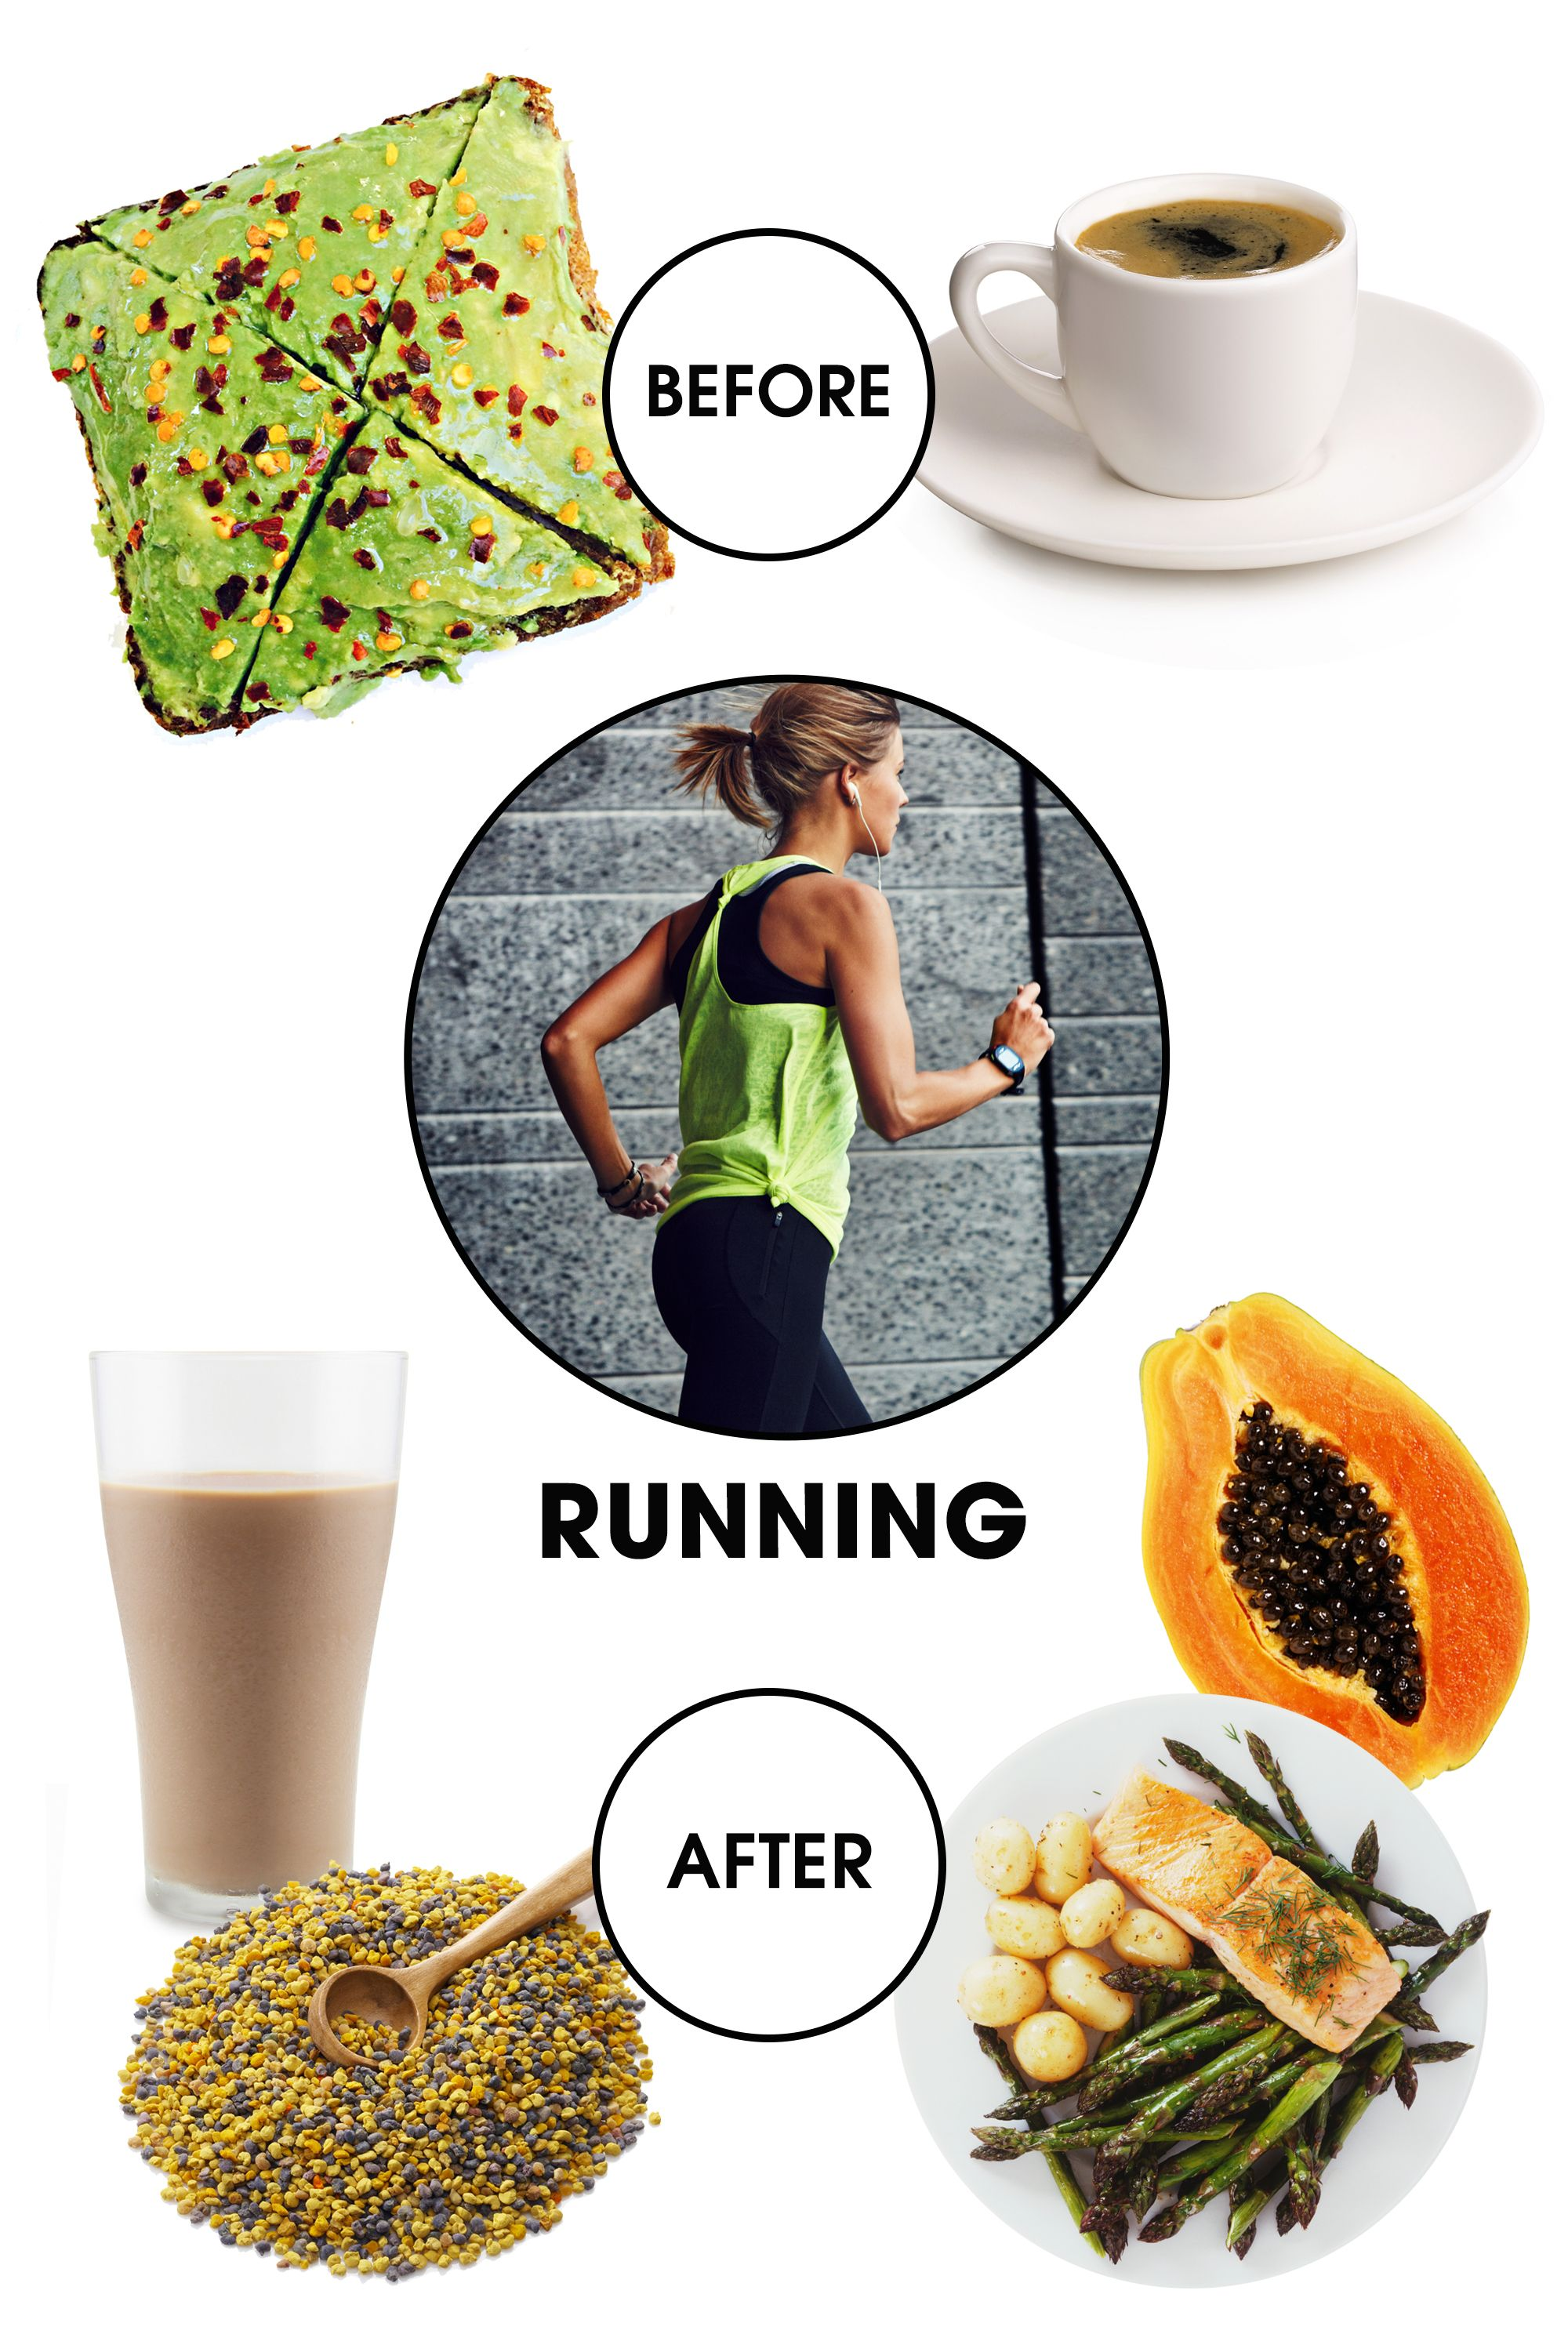 (*Spin junkies, take note! This applies to you, too.)